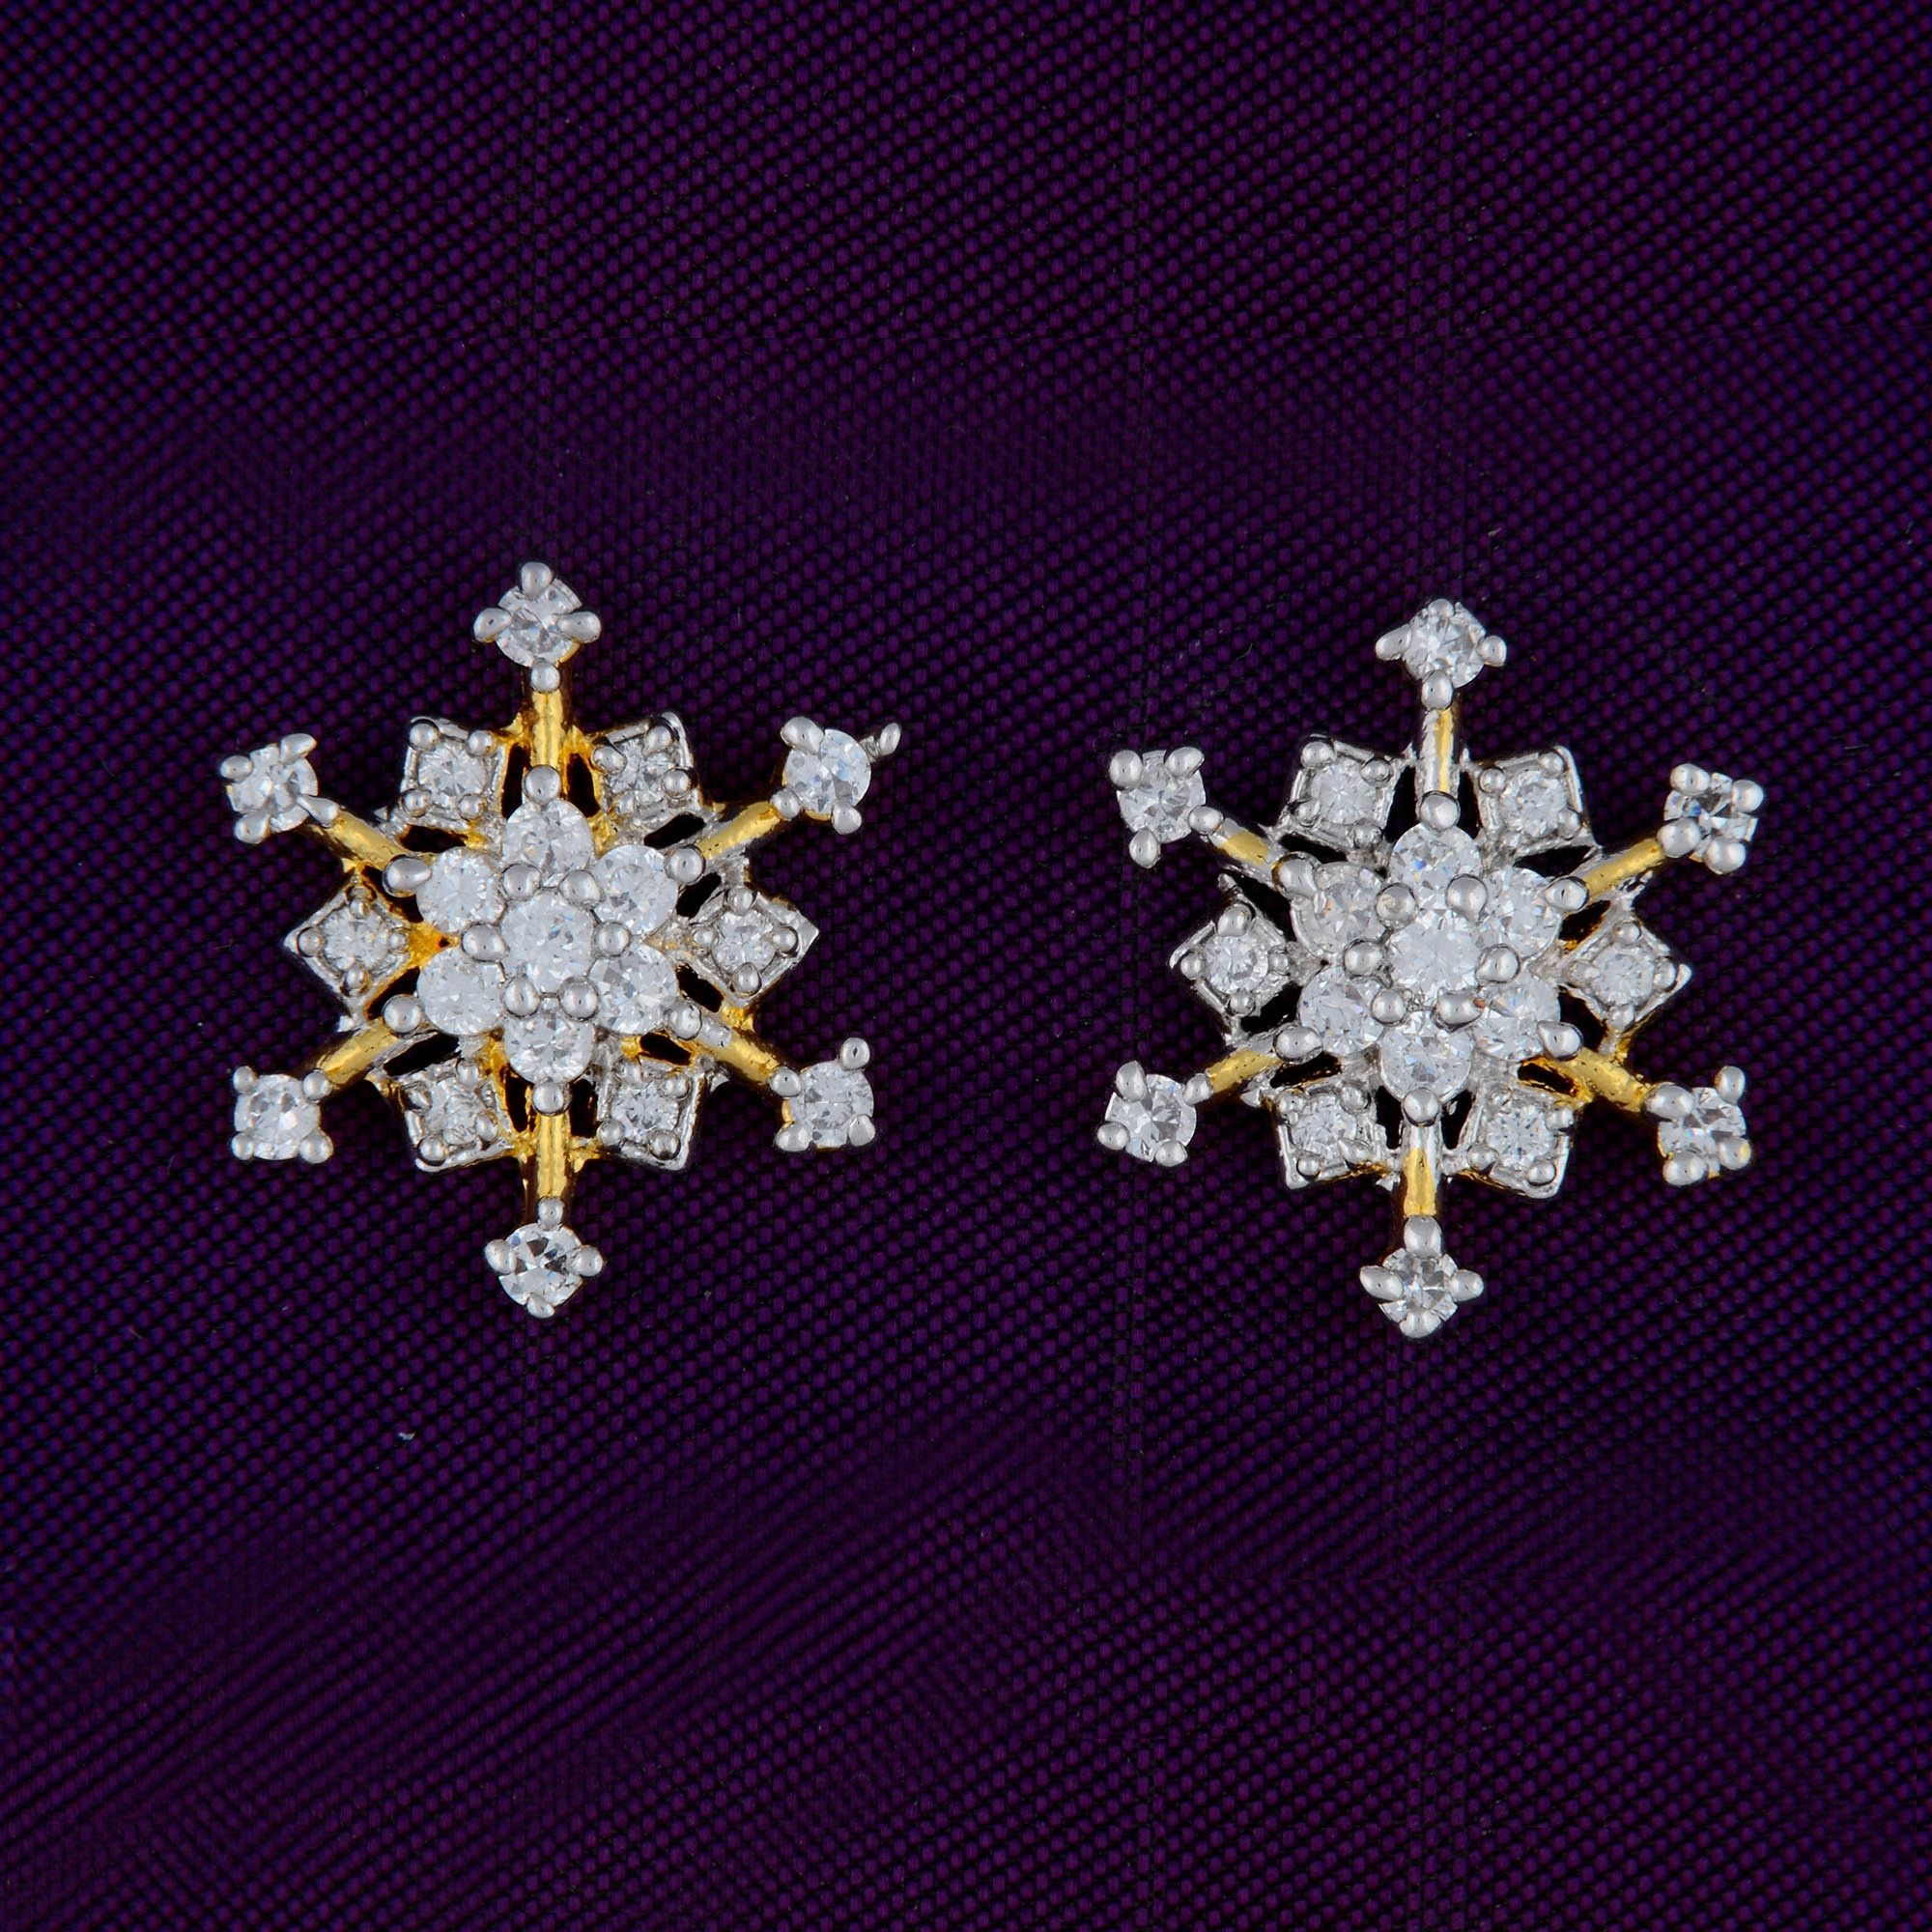 stone earrings diamond jewelry swasam store indian diamon american com cz